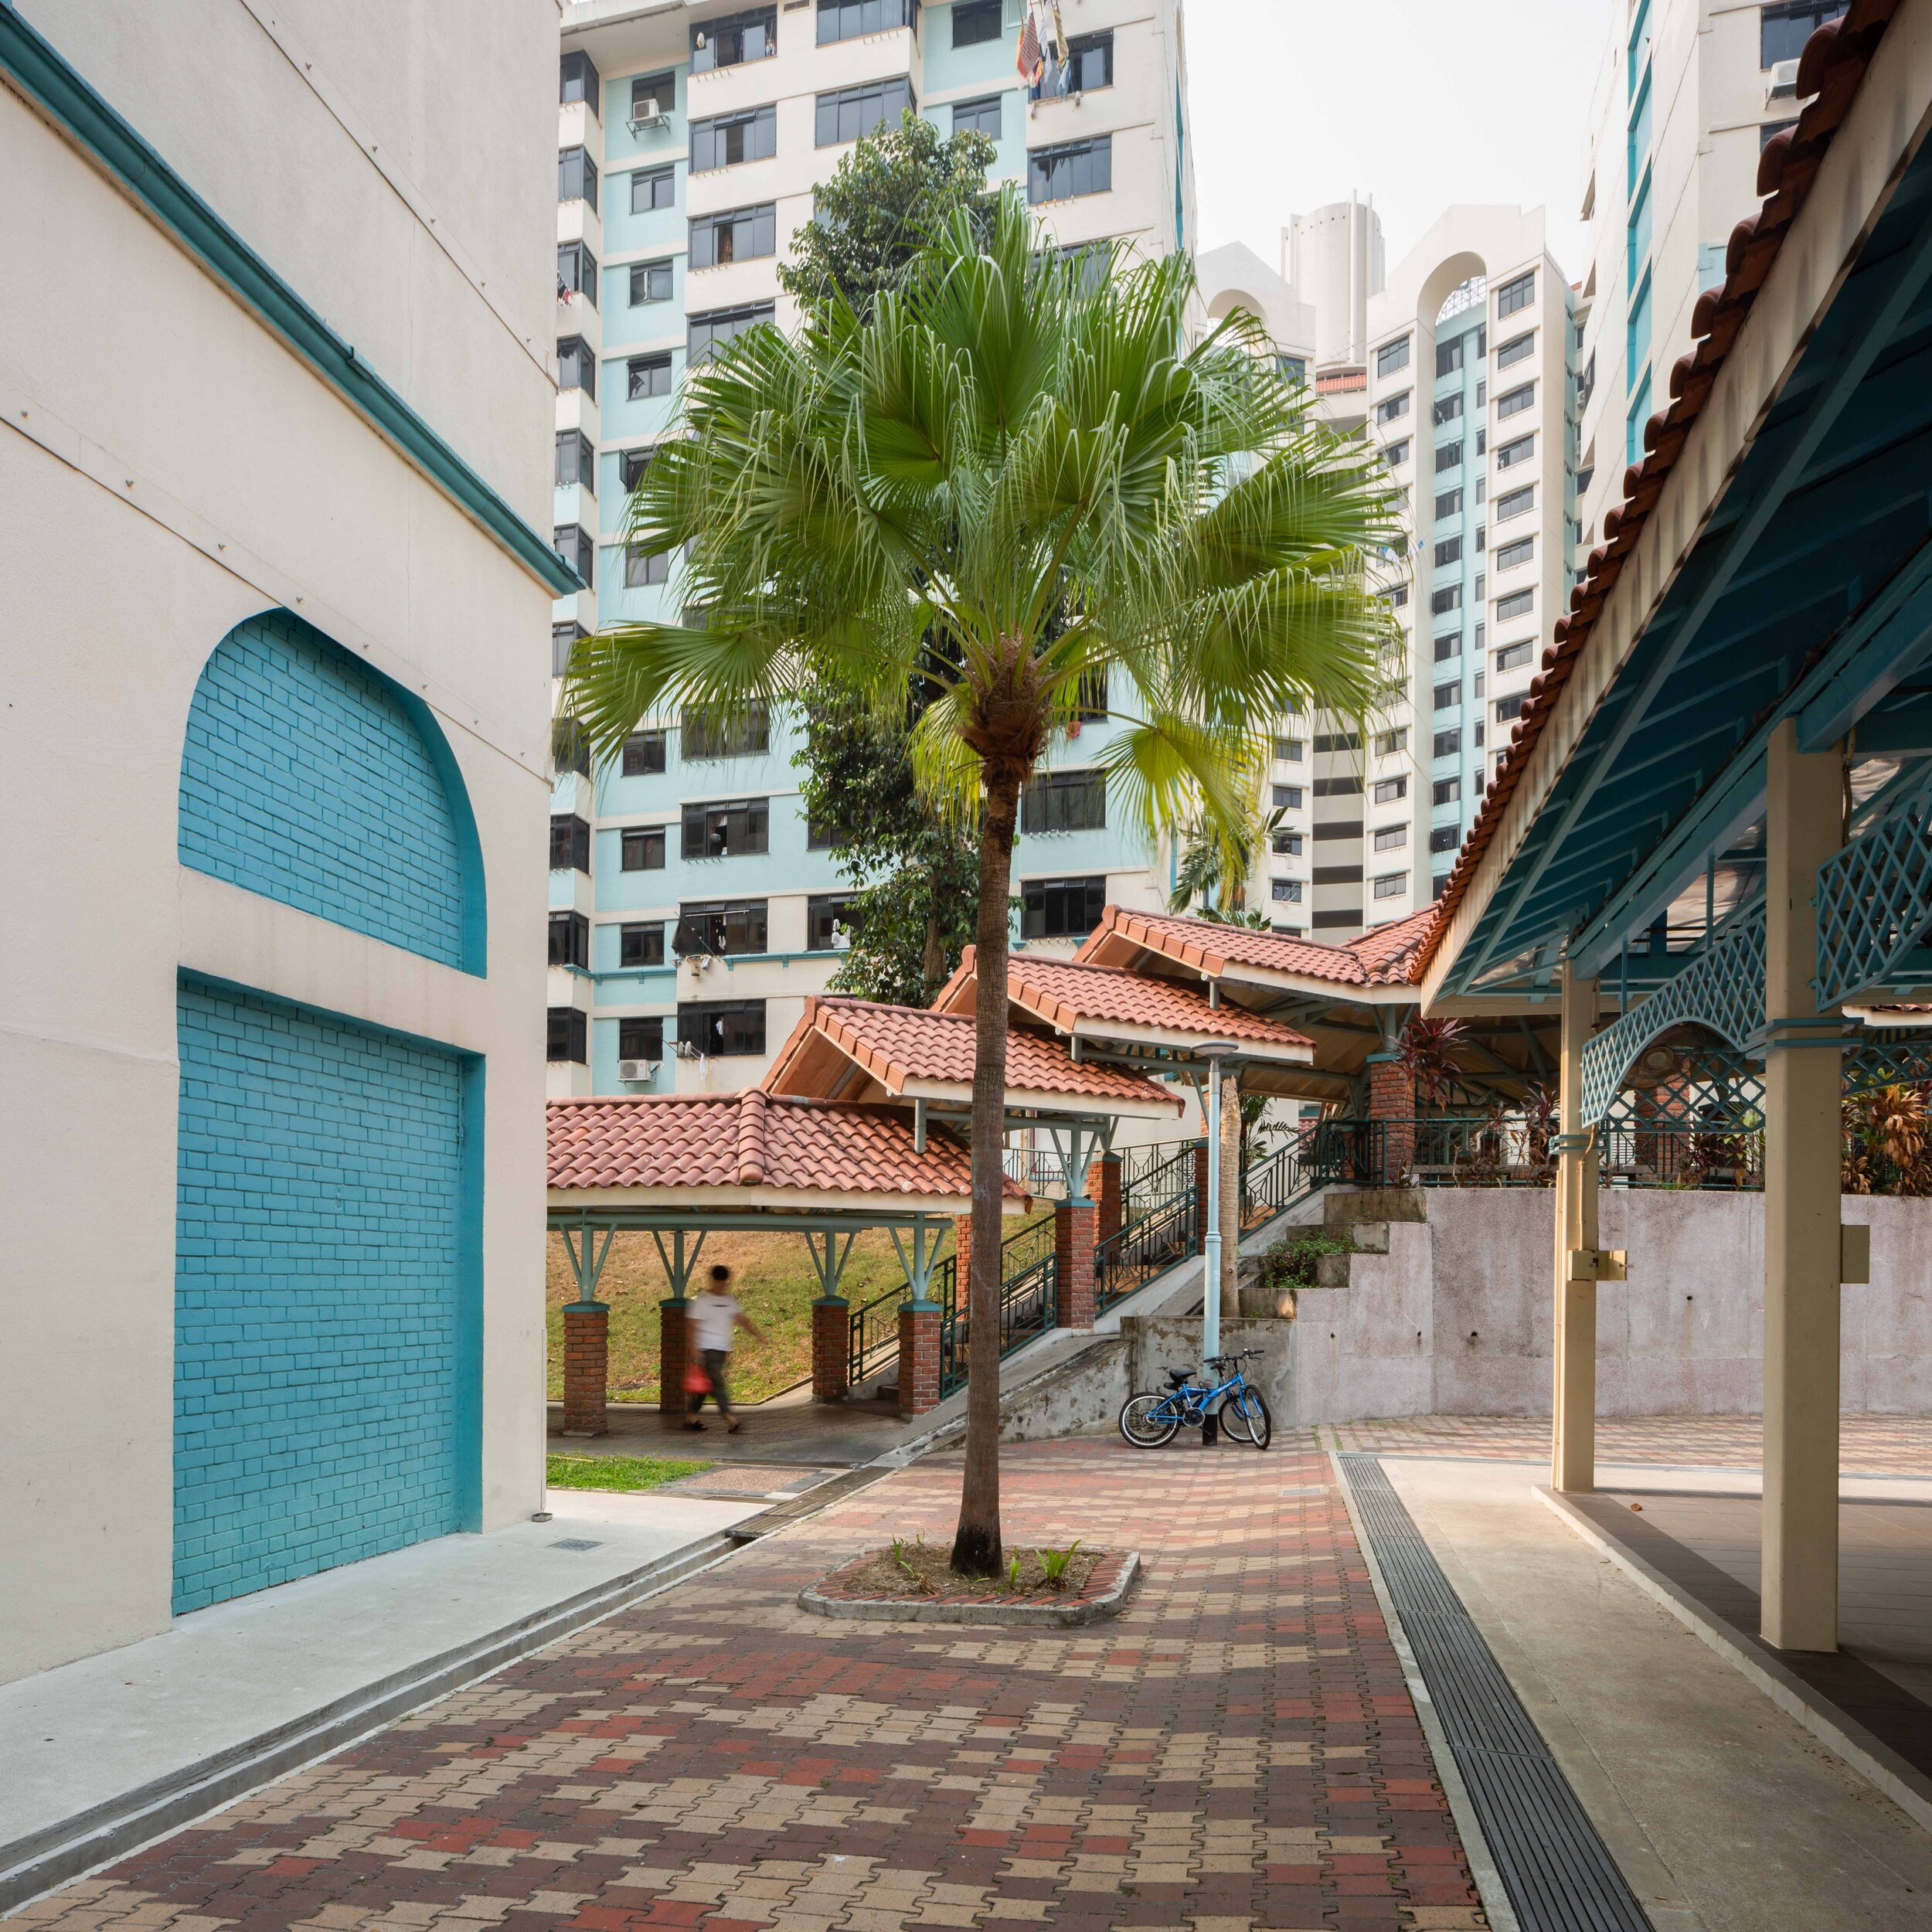 56 Lorong 4 Toa Payoh 190918 120, image by Andrew Campbell Nelson.jpg